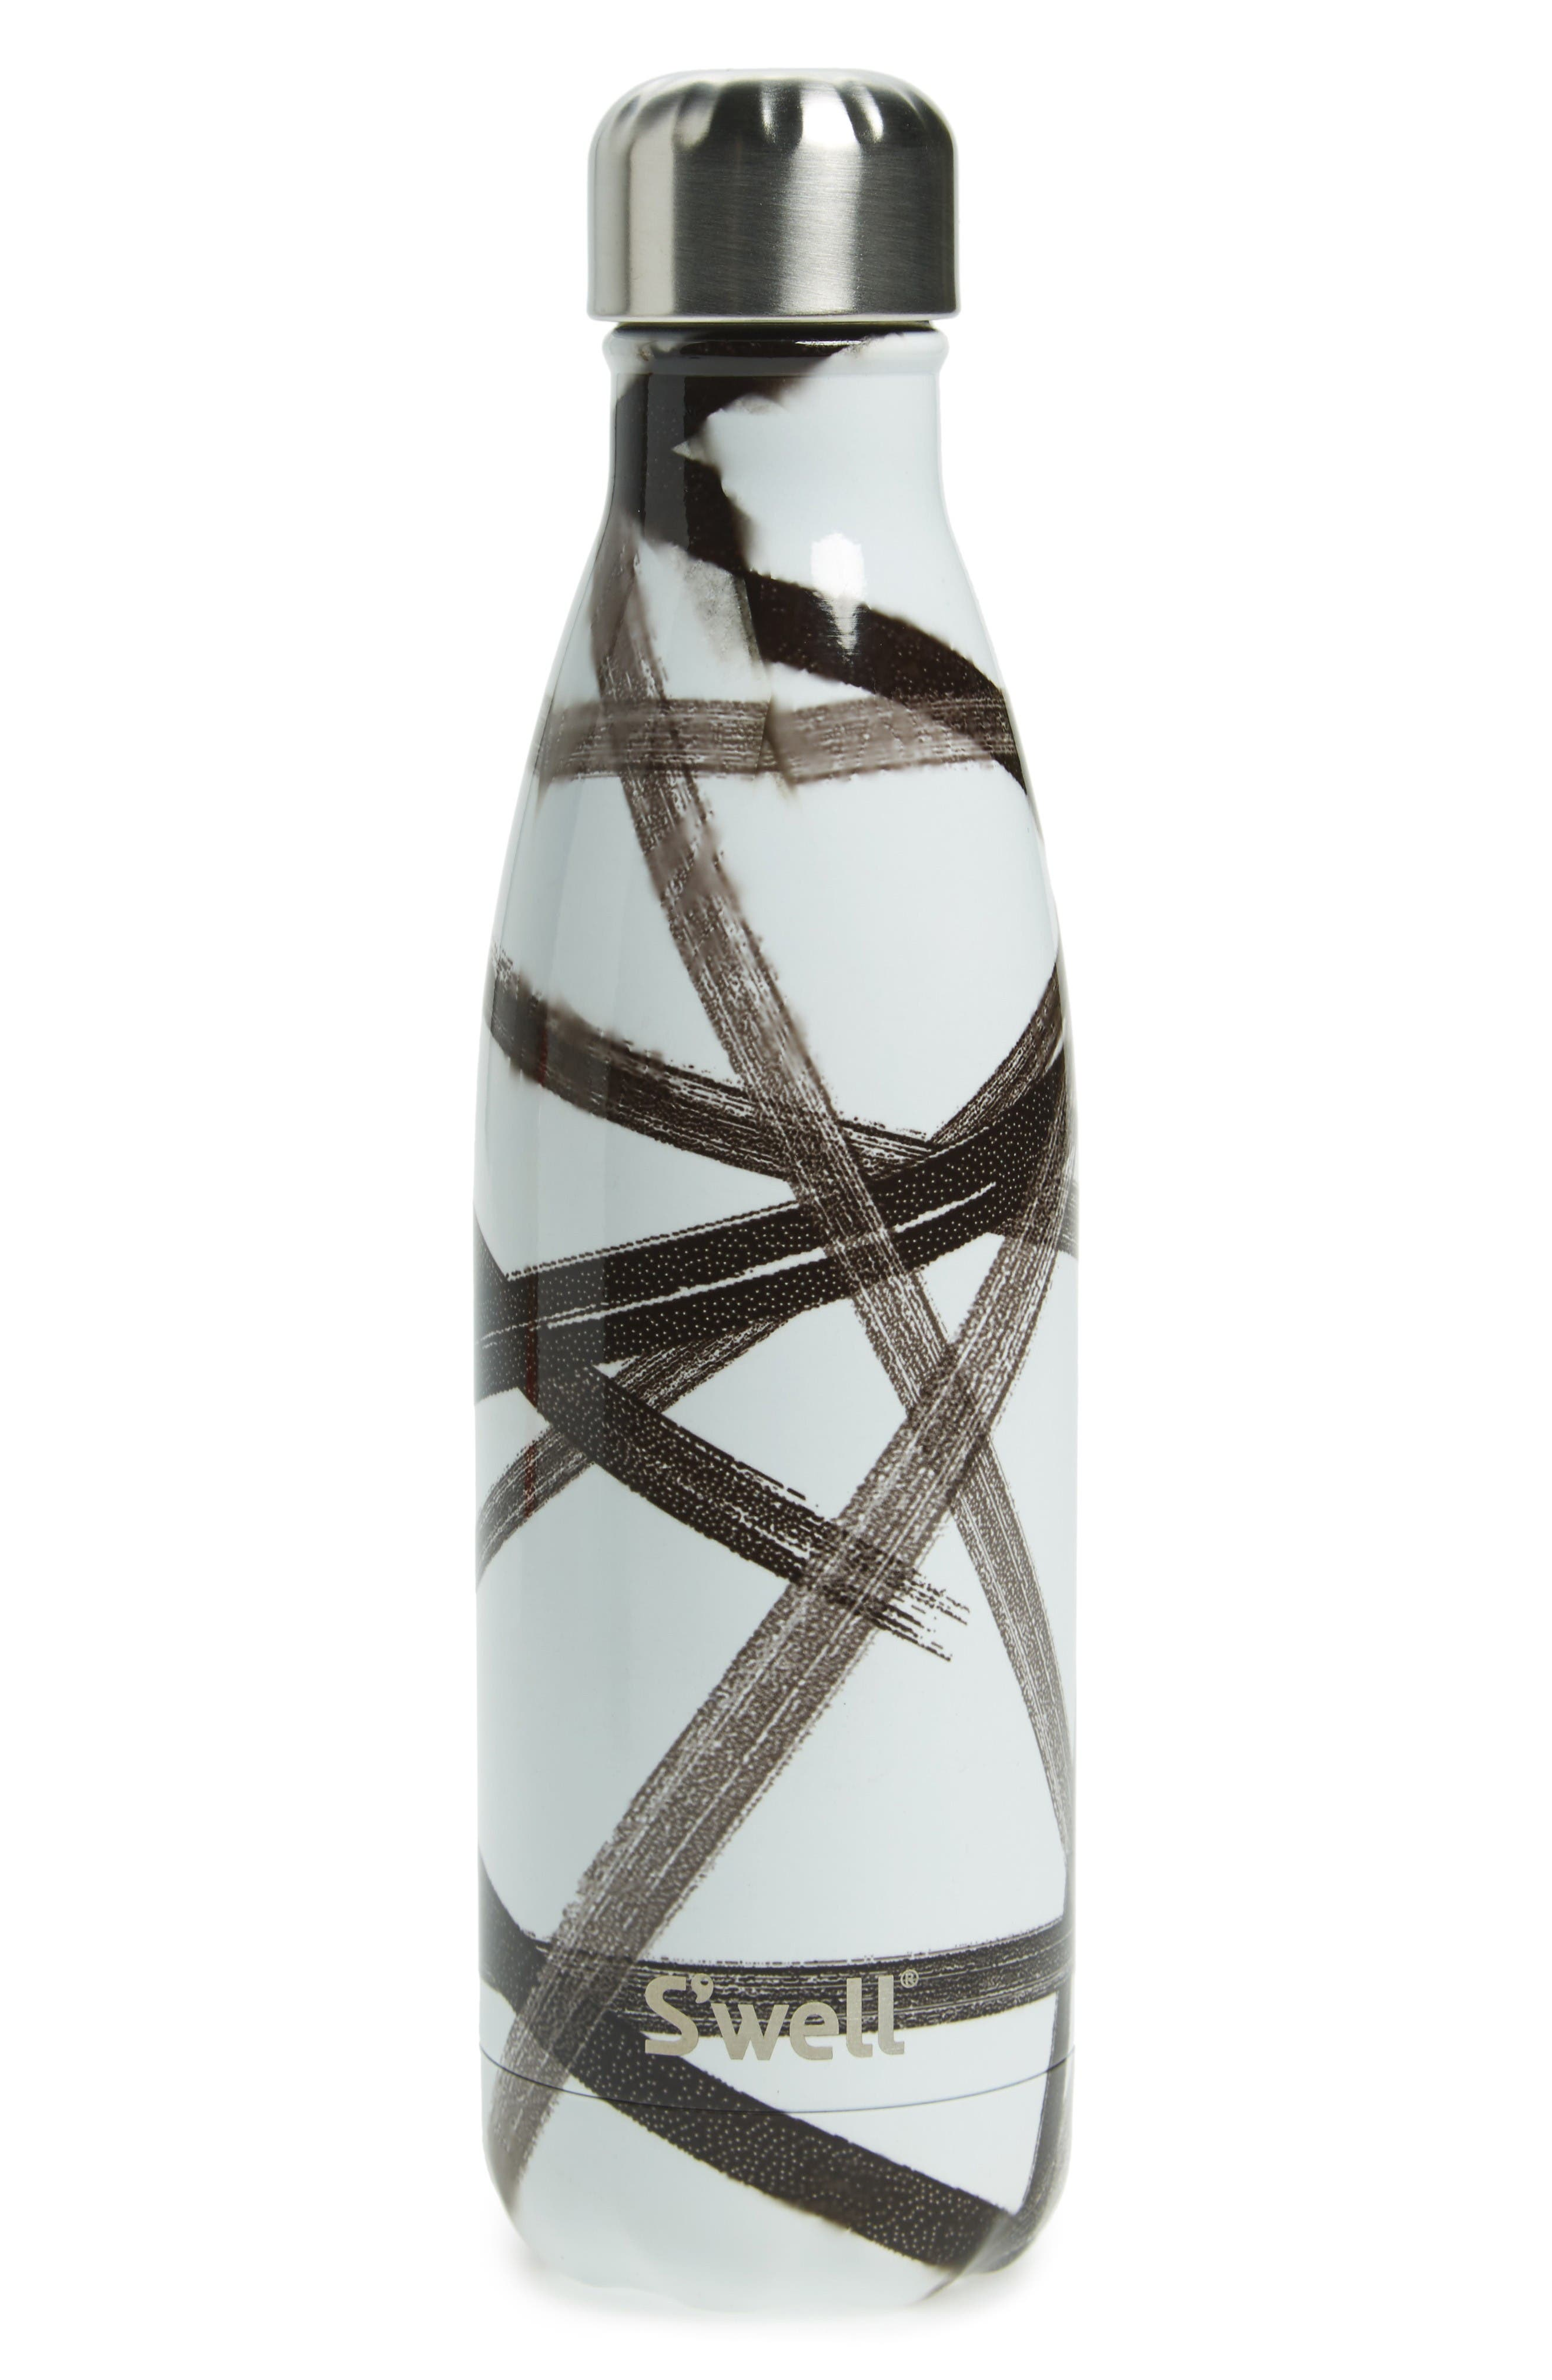 S'well Black Ribbon Insulated Stainless Steel Water Bottle